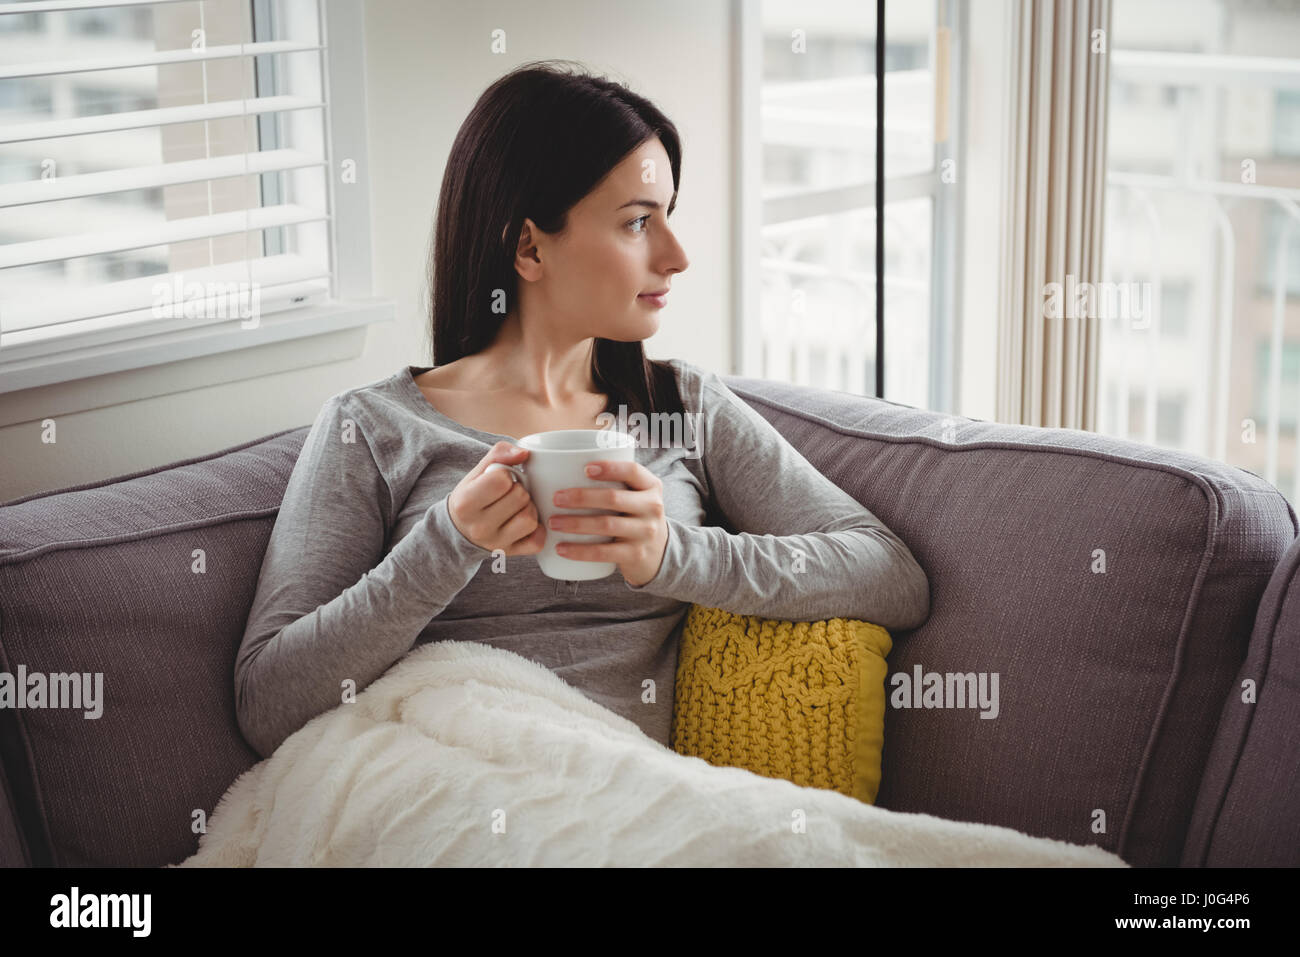 Woman holding cup while looking through window at home - Stock Image